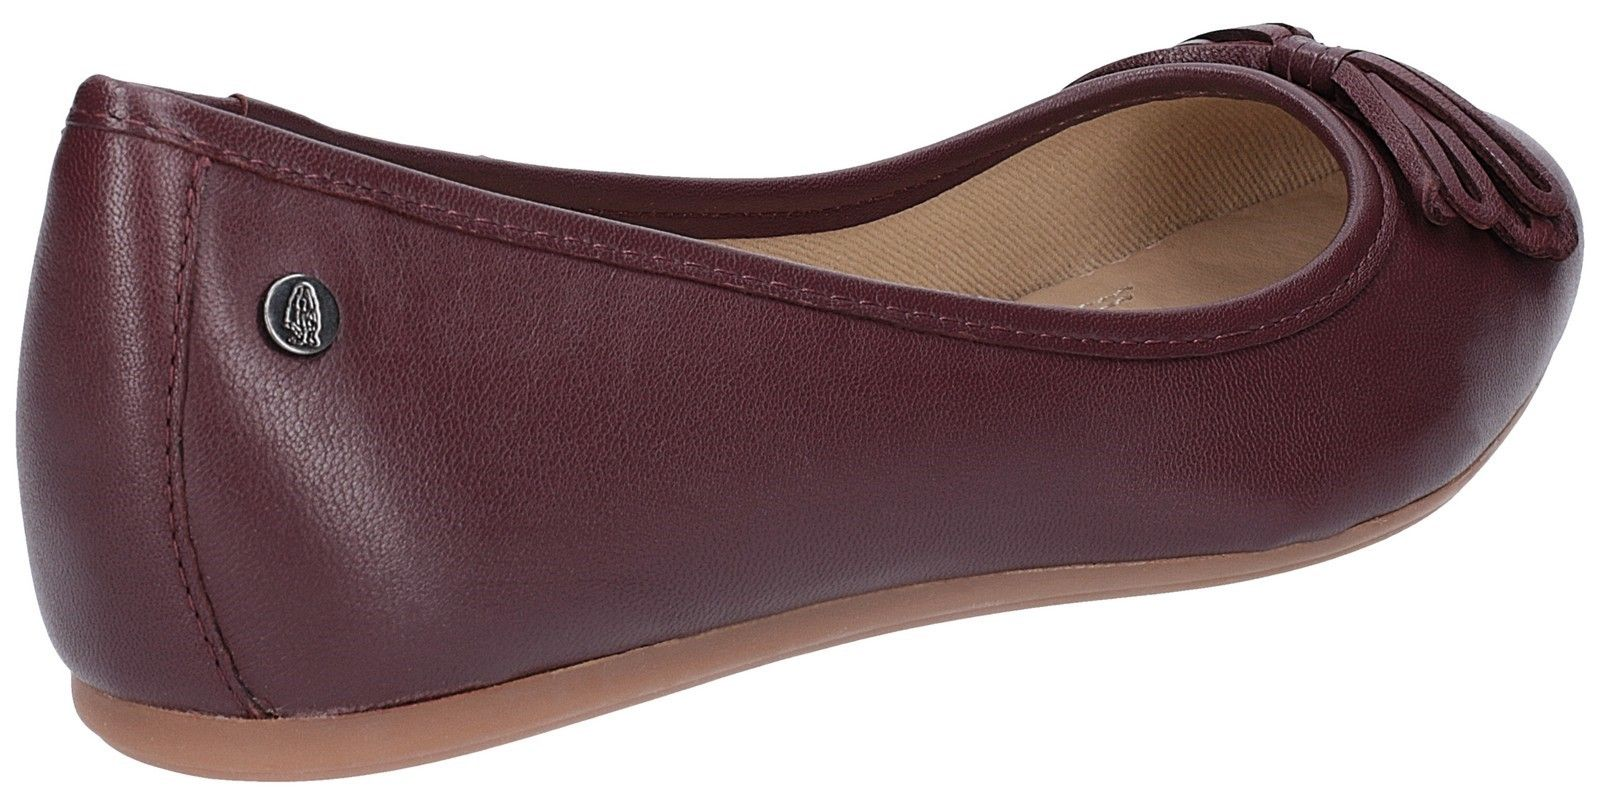 Heather Bow Ballet Shoe